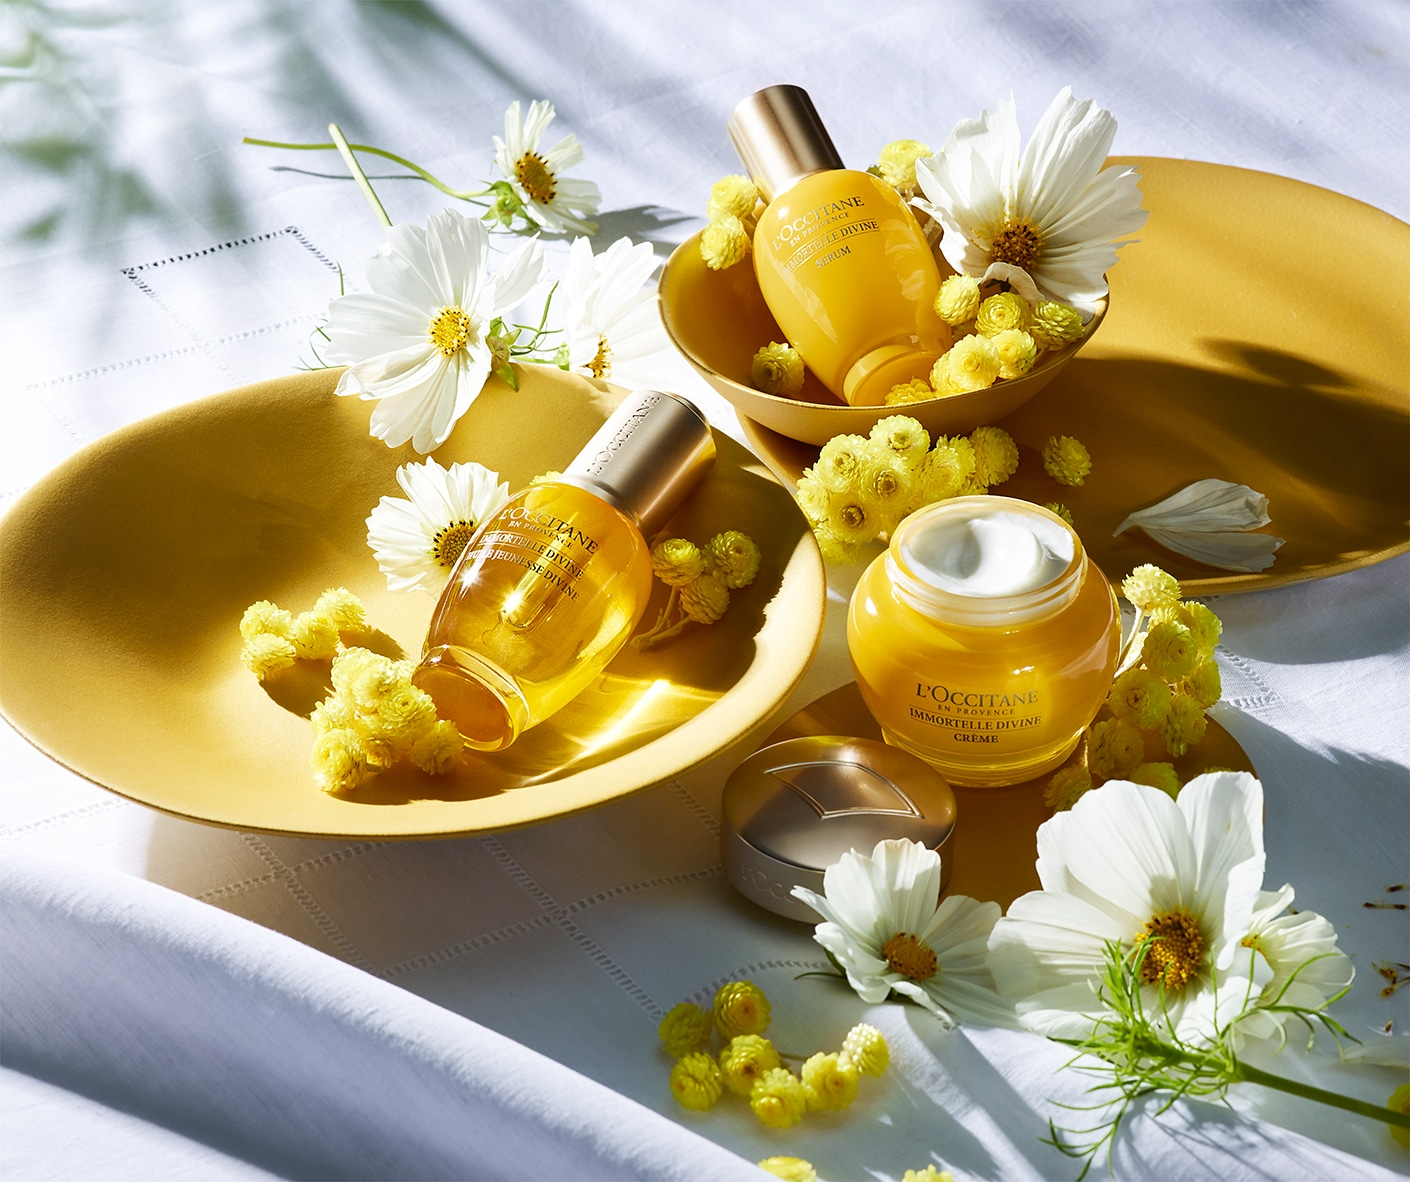 Immortelle Divine - anti-aging beauty routine - l'Occitane